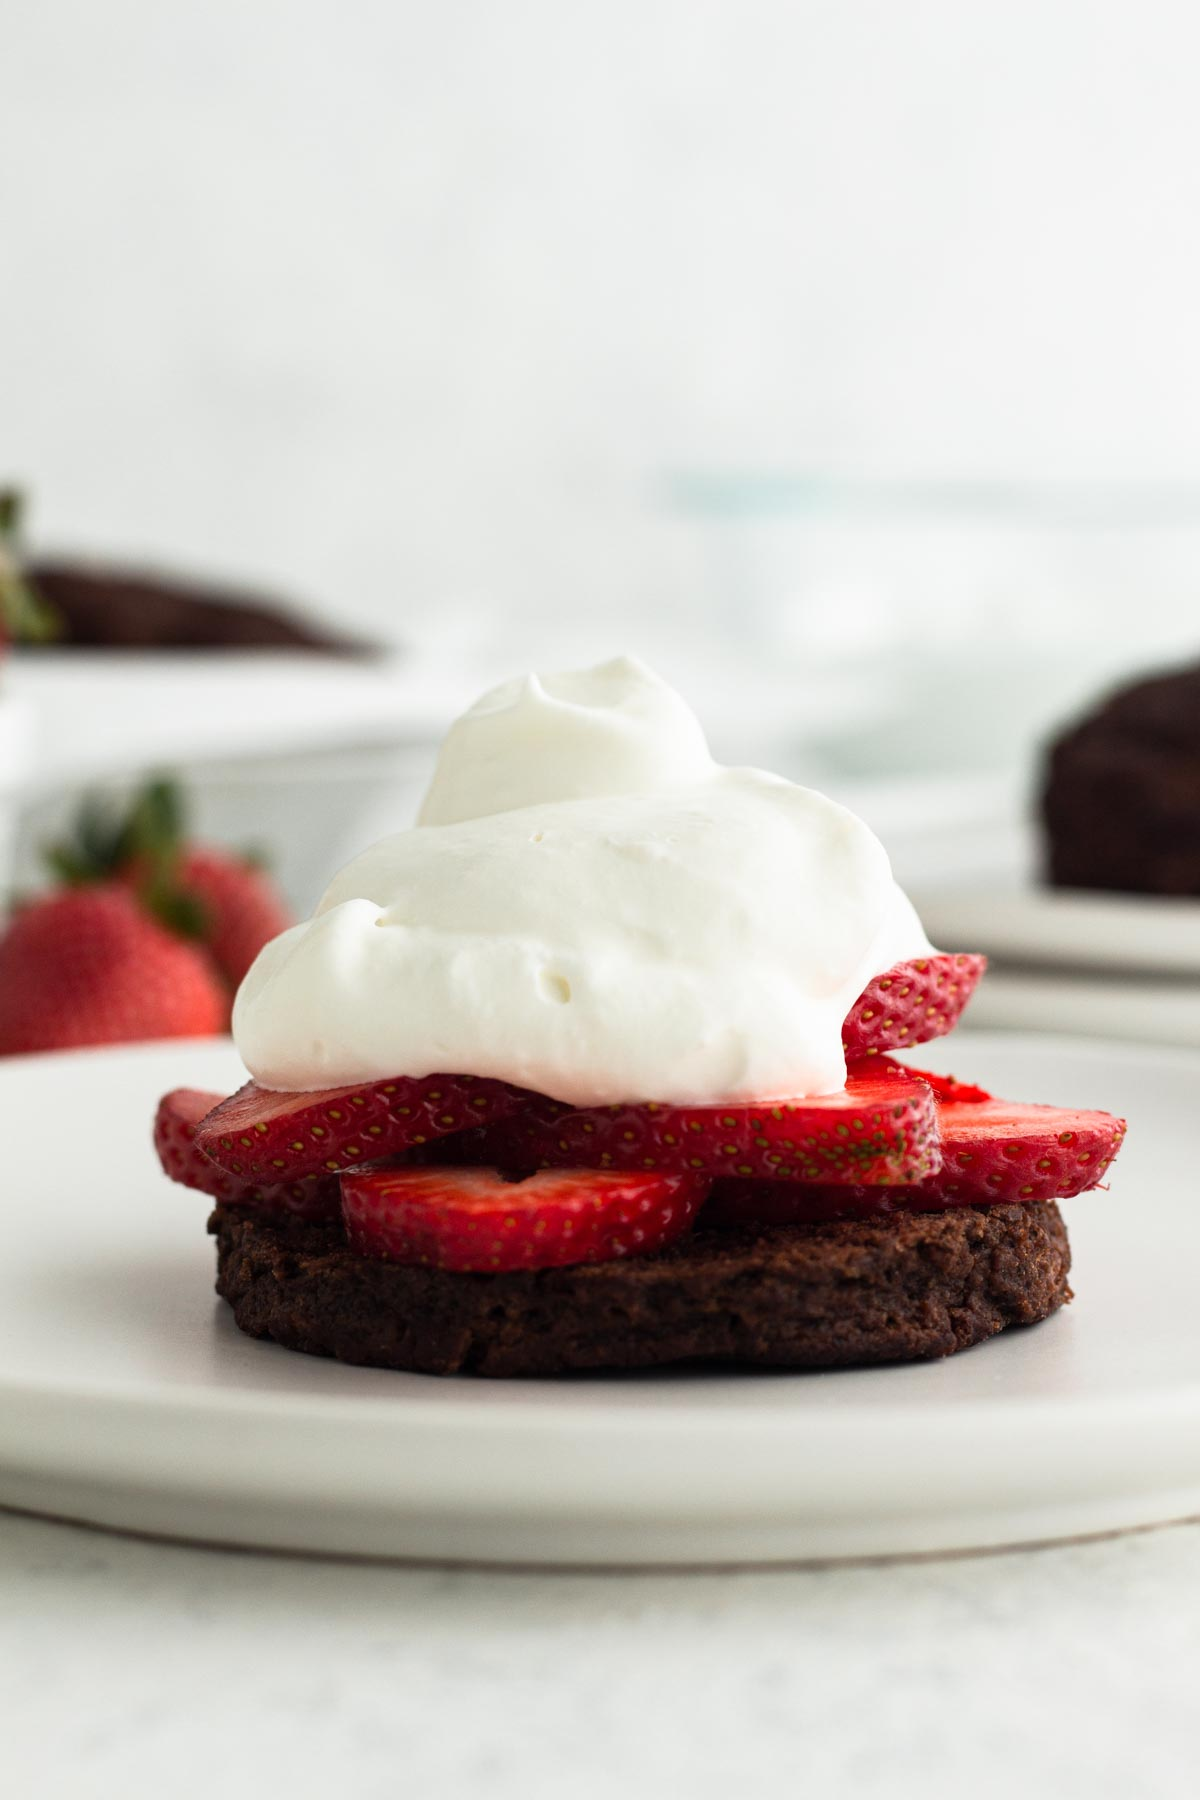 close up side view of a chocolate buttermilk biscuit topped with fresh strawberries and homemade whipped cream on a white plate